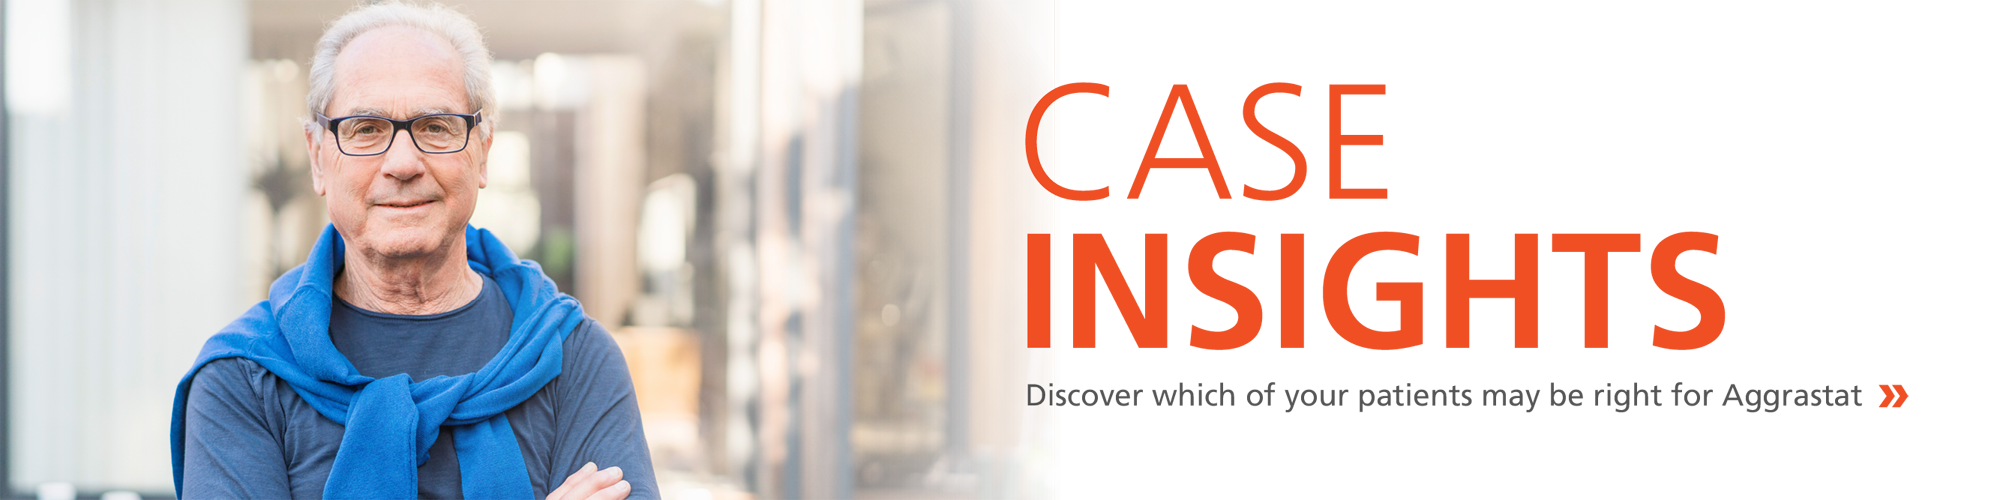 Case Insights - Discover which of your patients may be right for Aggrastst